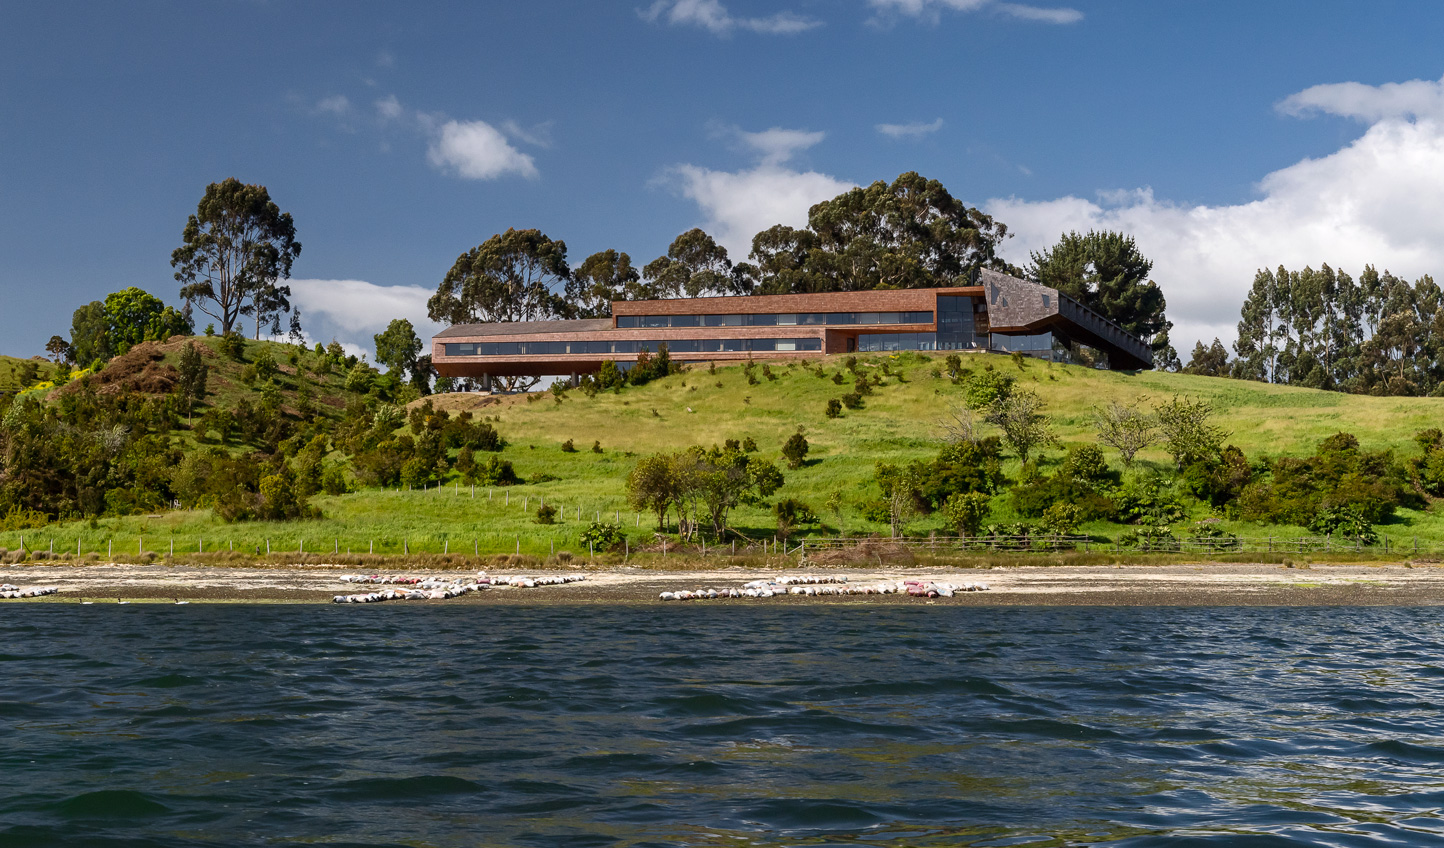 Get away from it all and hole up at the secluded Tierra Chiloe